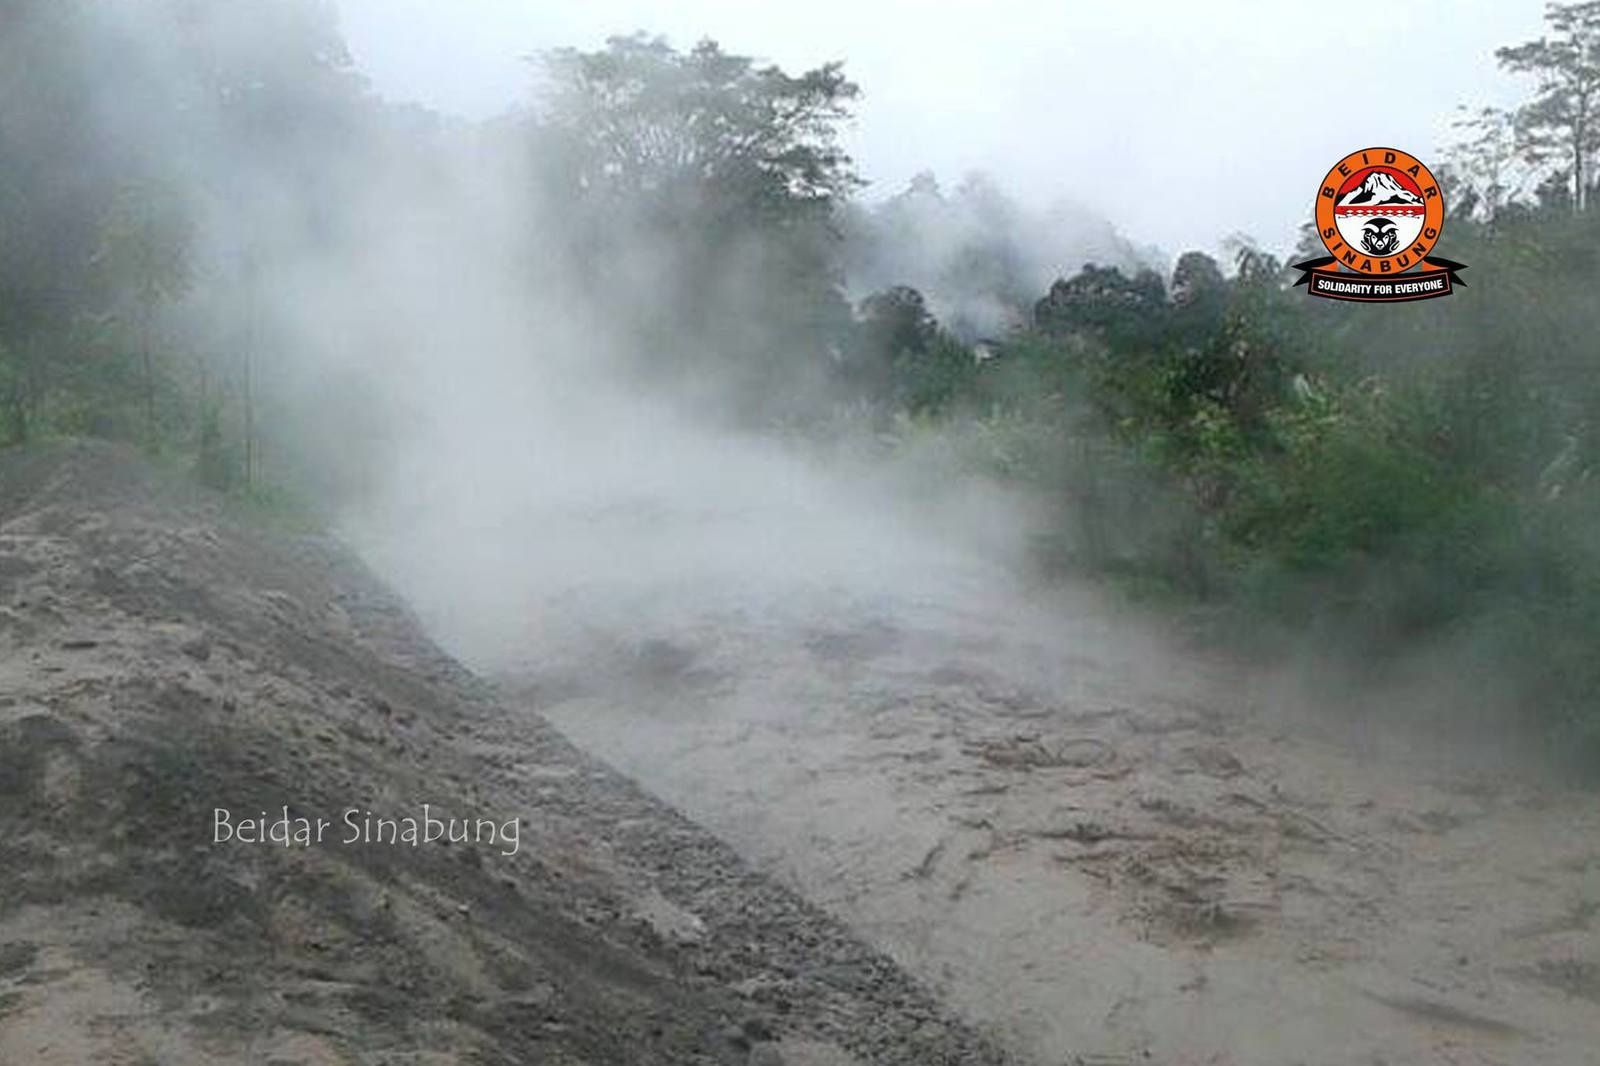 Lahar of the Sinabung 12/04/2015 - photo Beidar Sinabung